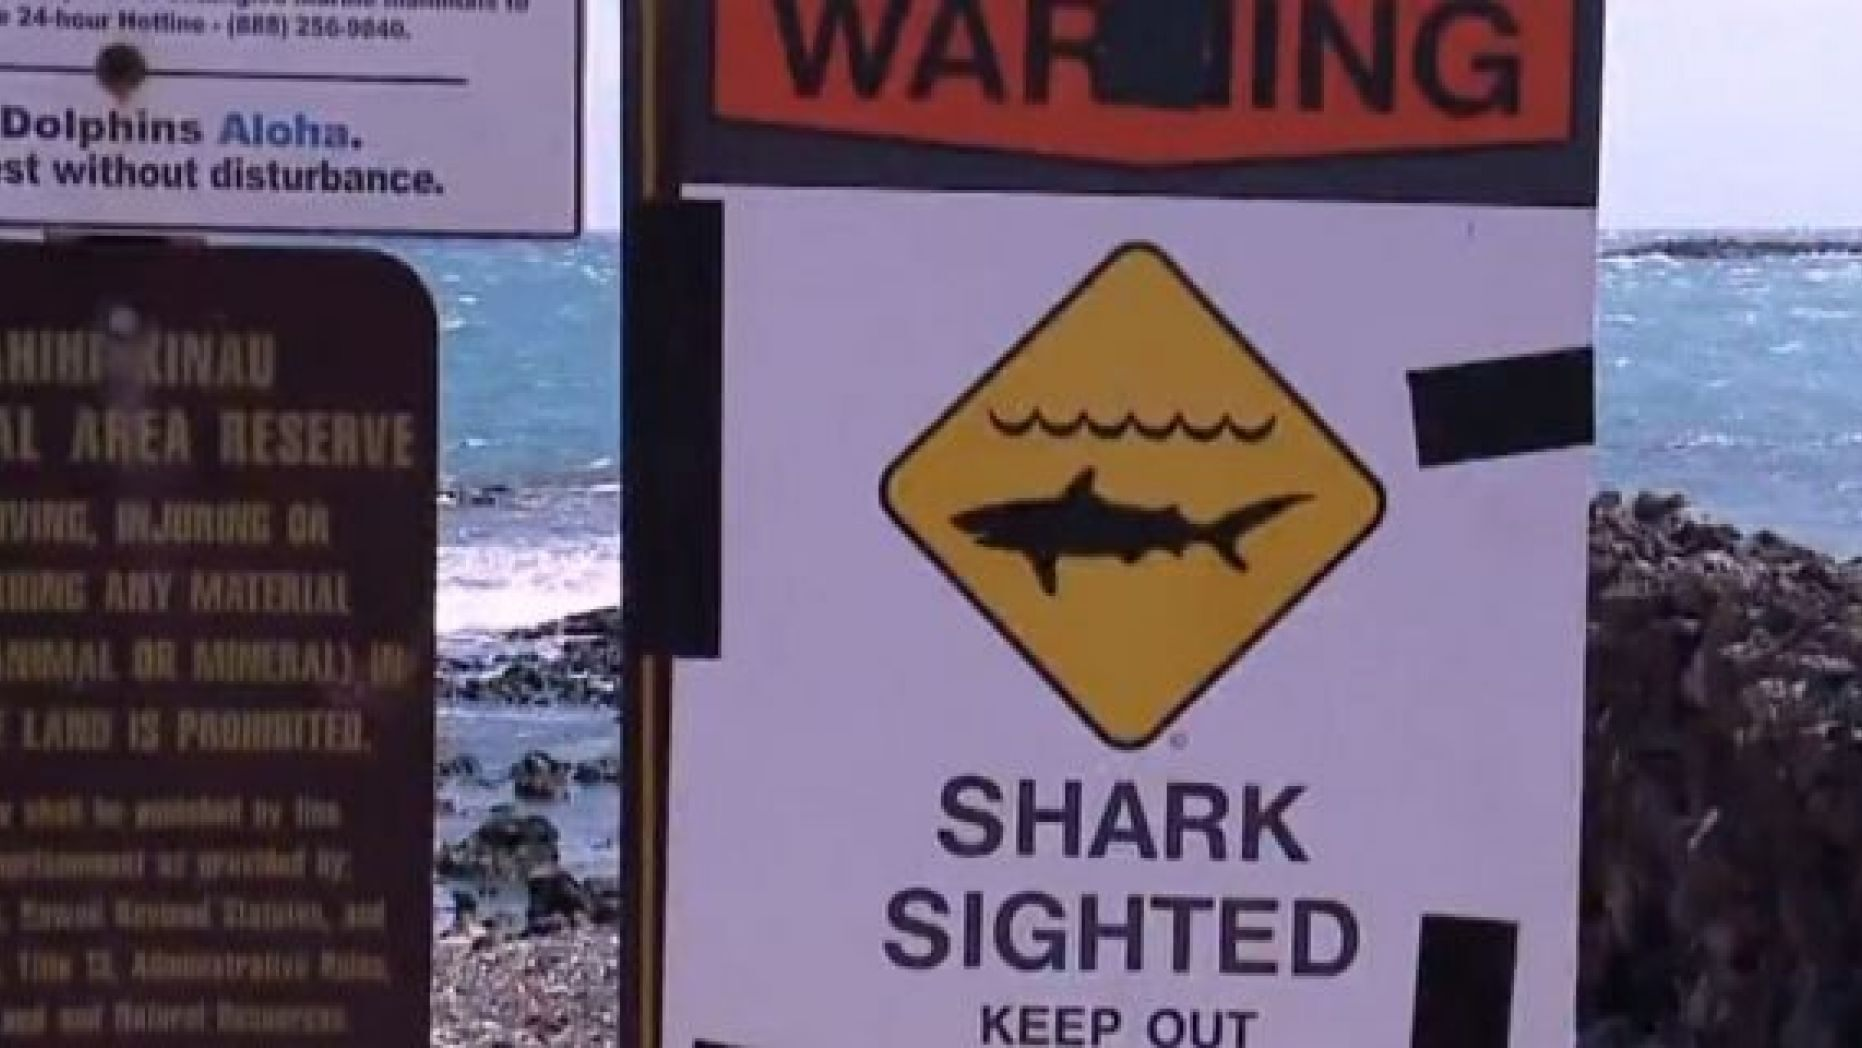 Shark warning signs were posted in the Ka